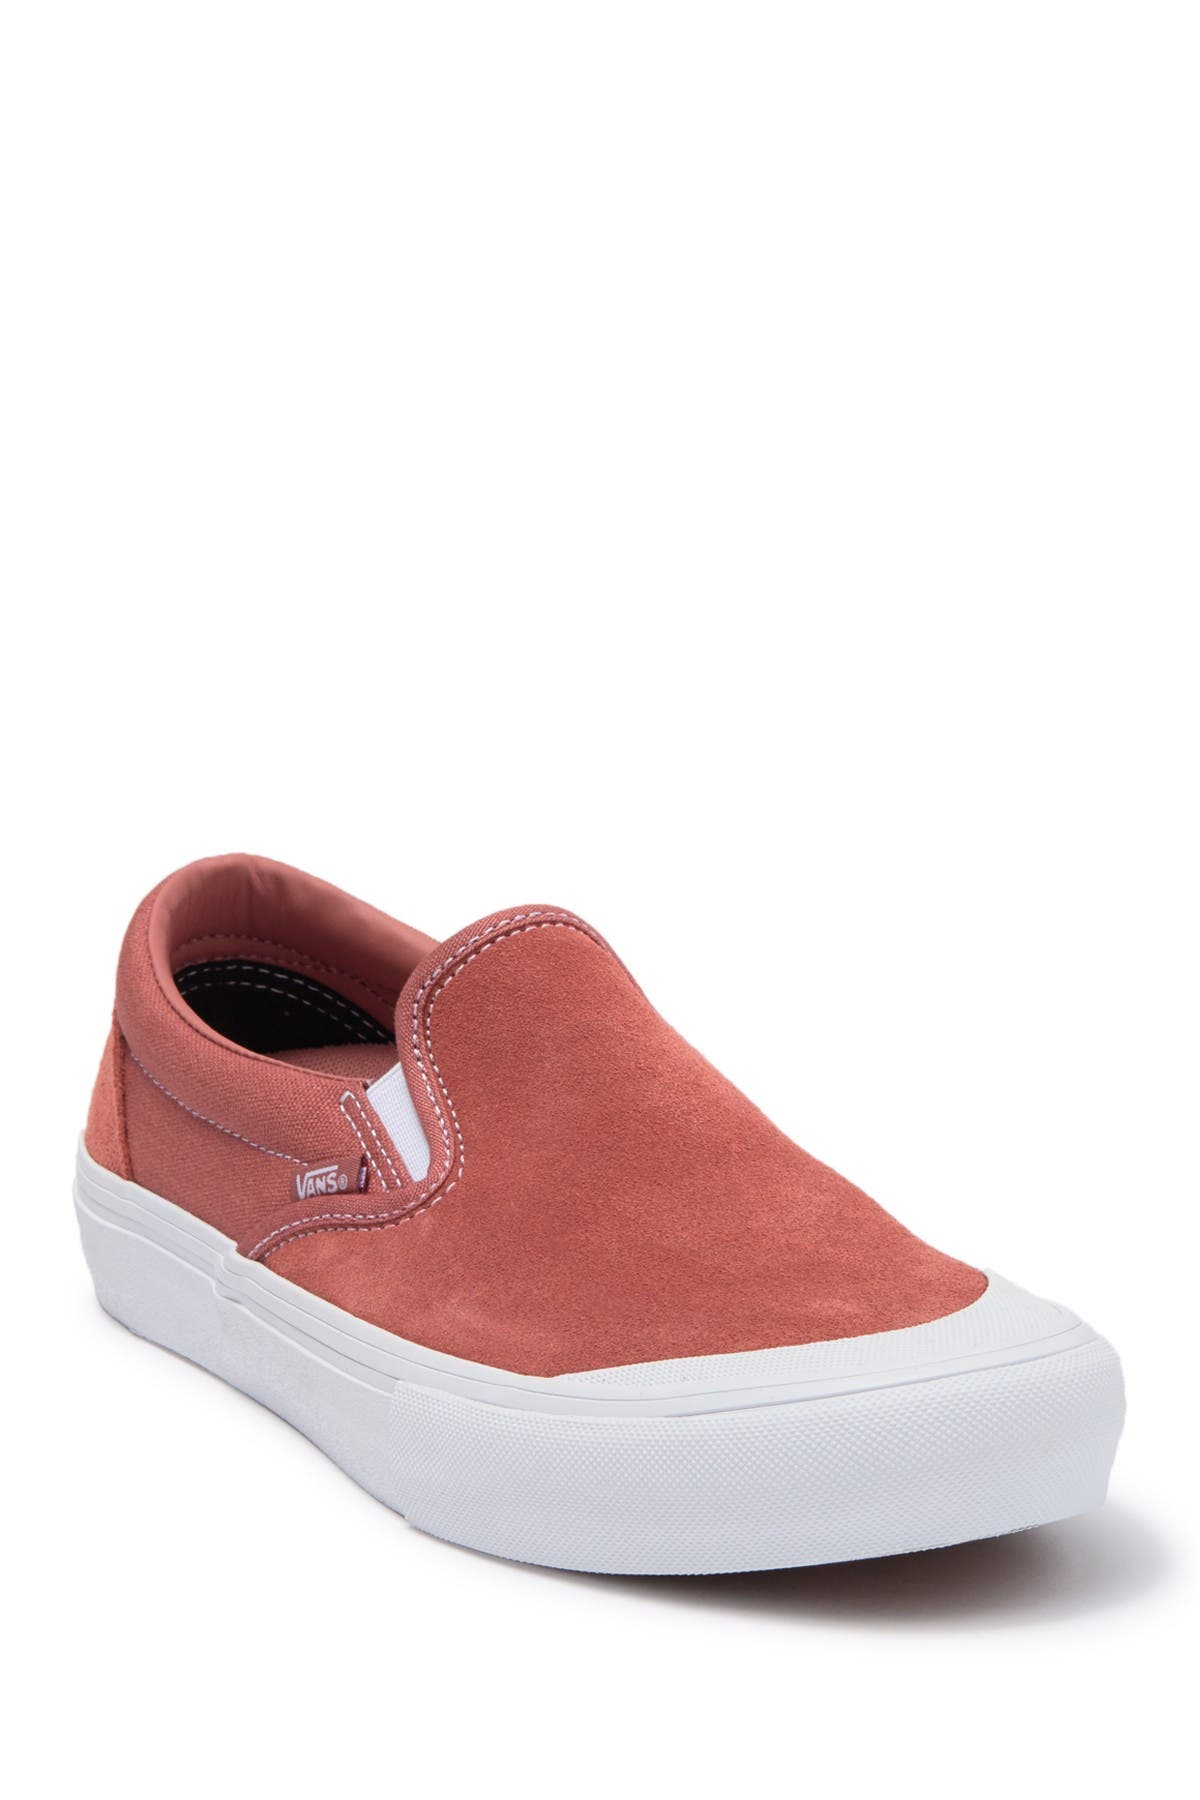 Image of VANS Brick Dust Slip-On Sneaker